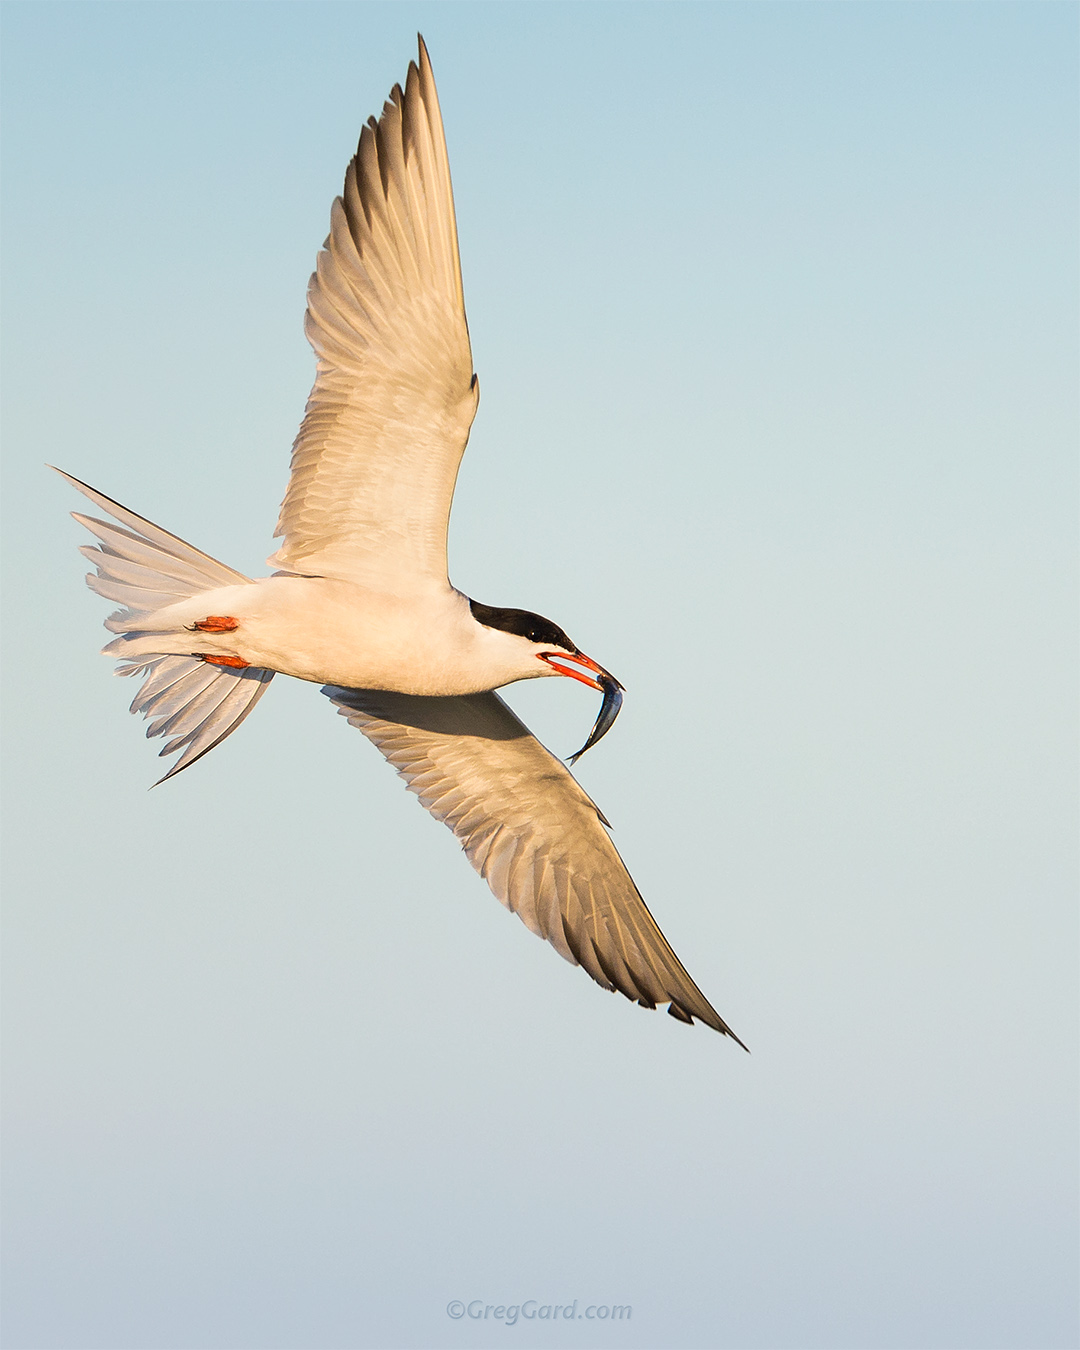 Close-up view on a flying Common Tern - Nickerson Beach, New York